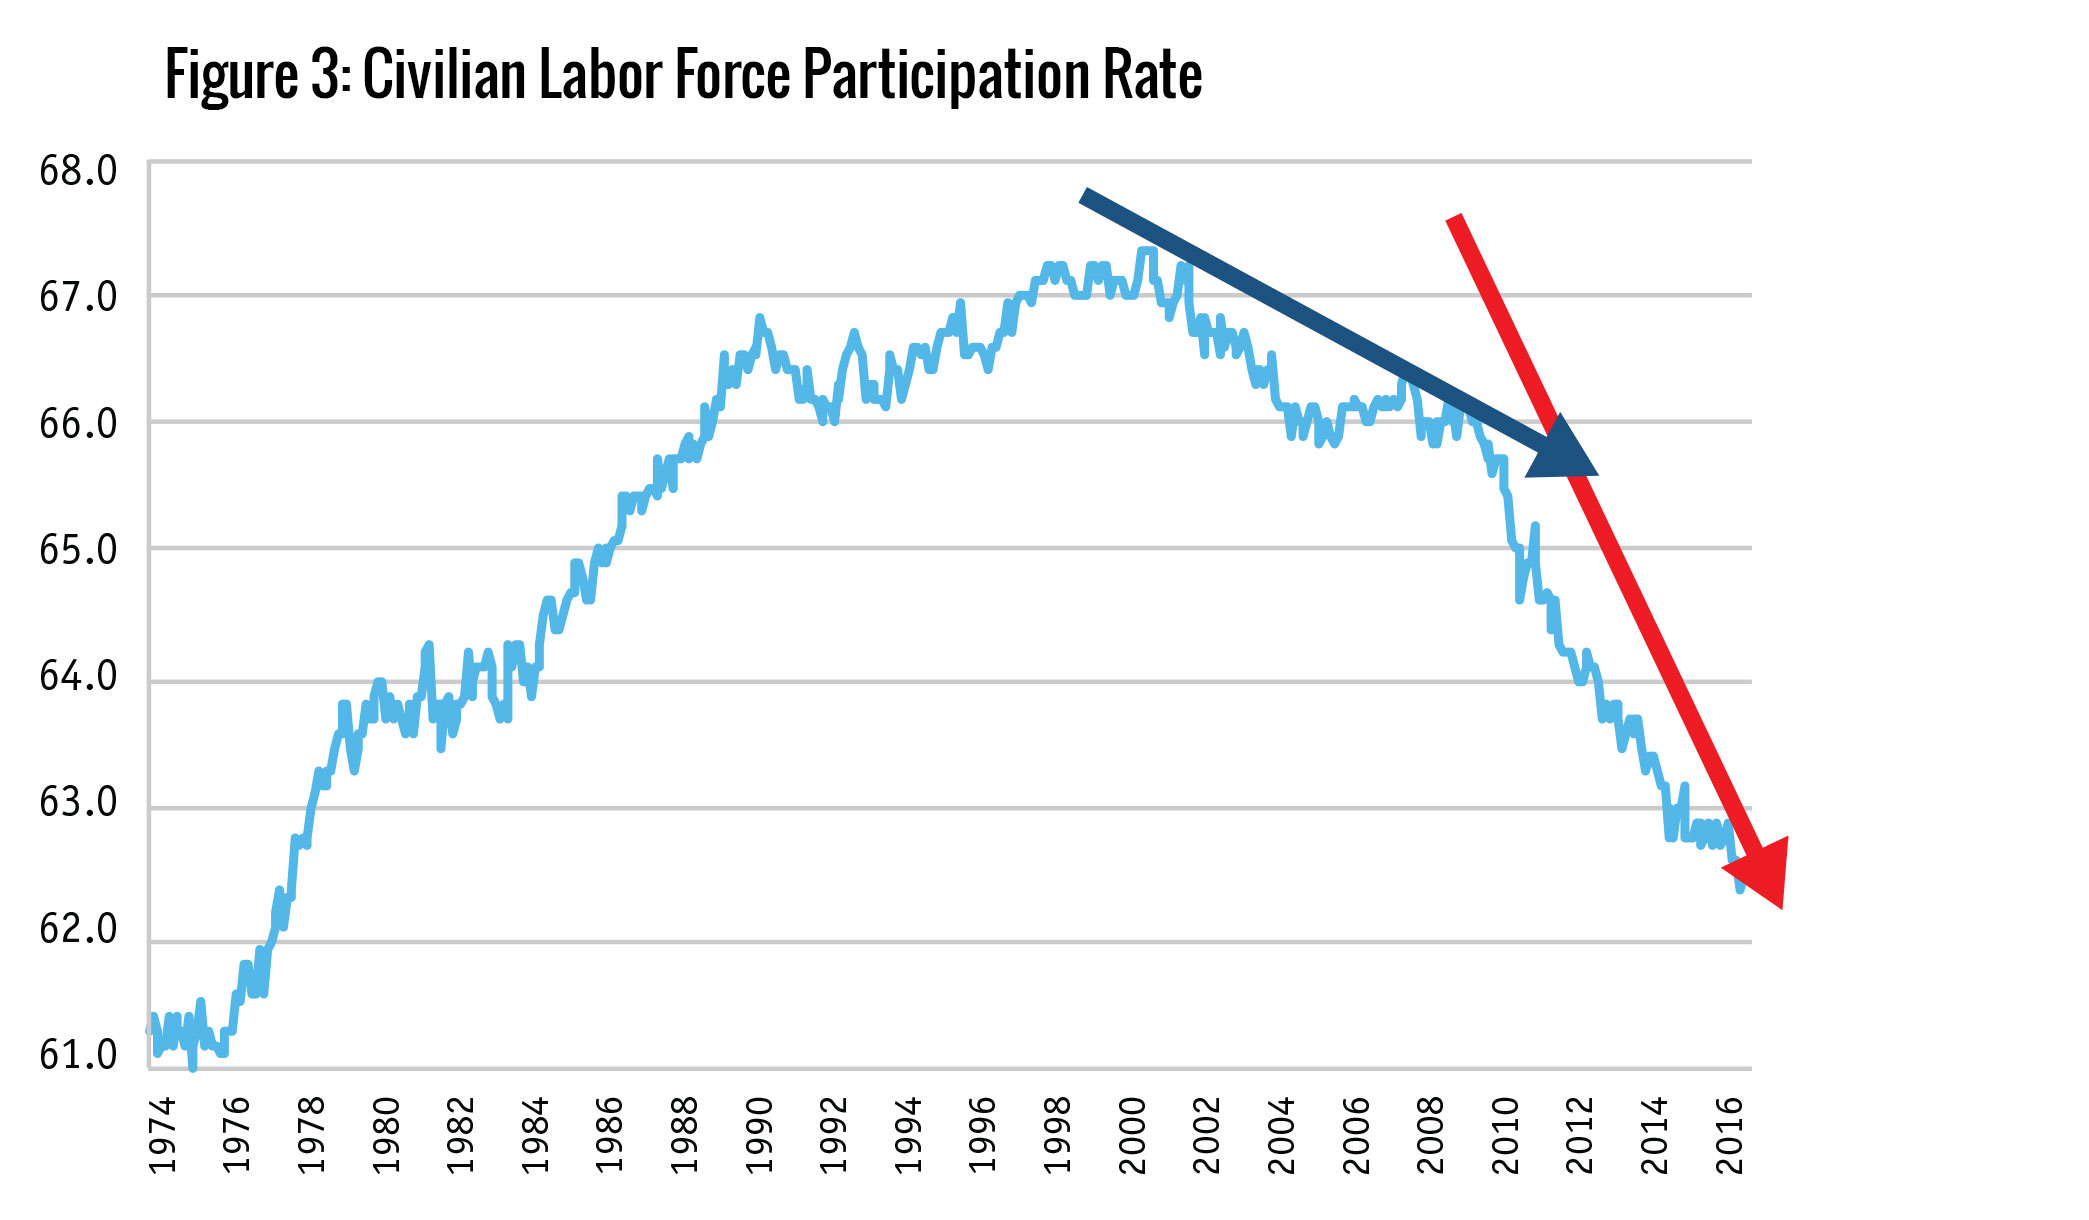 Figure 3: Civilian Labor Force Participation Rate